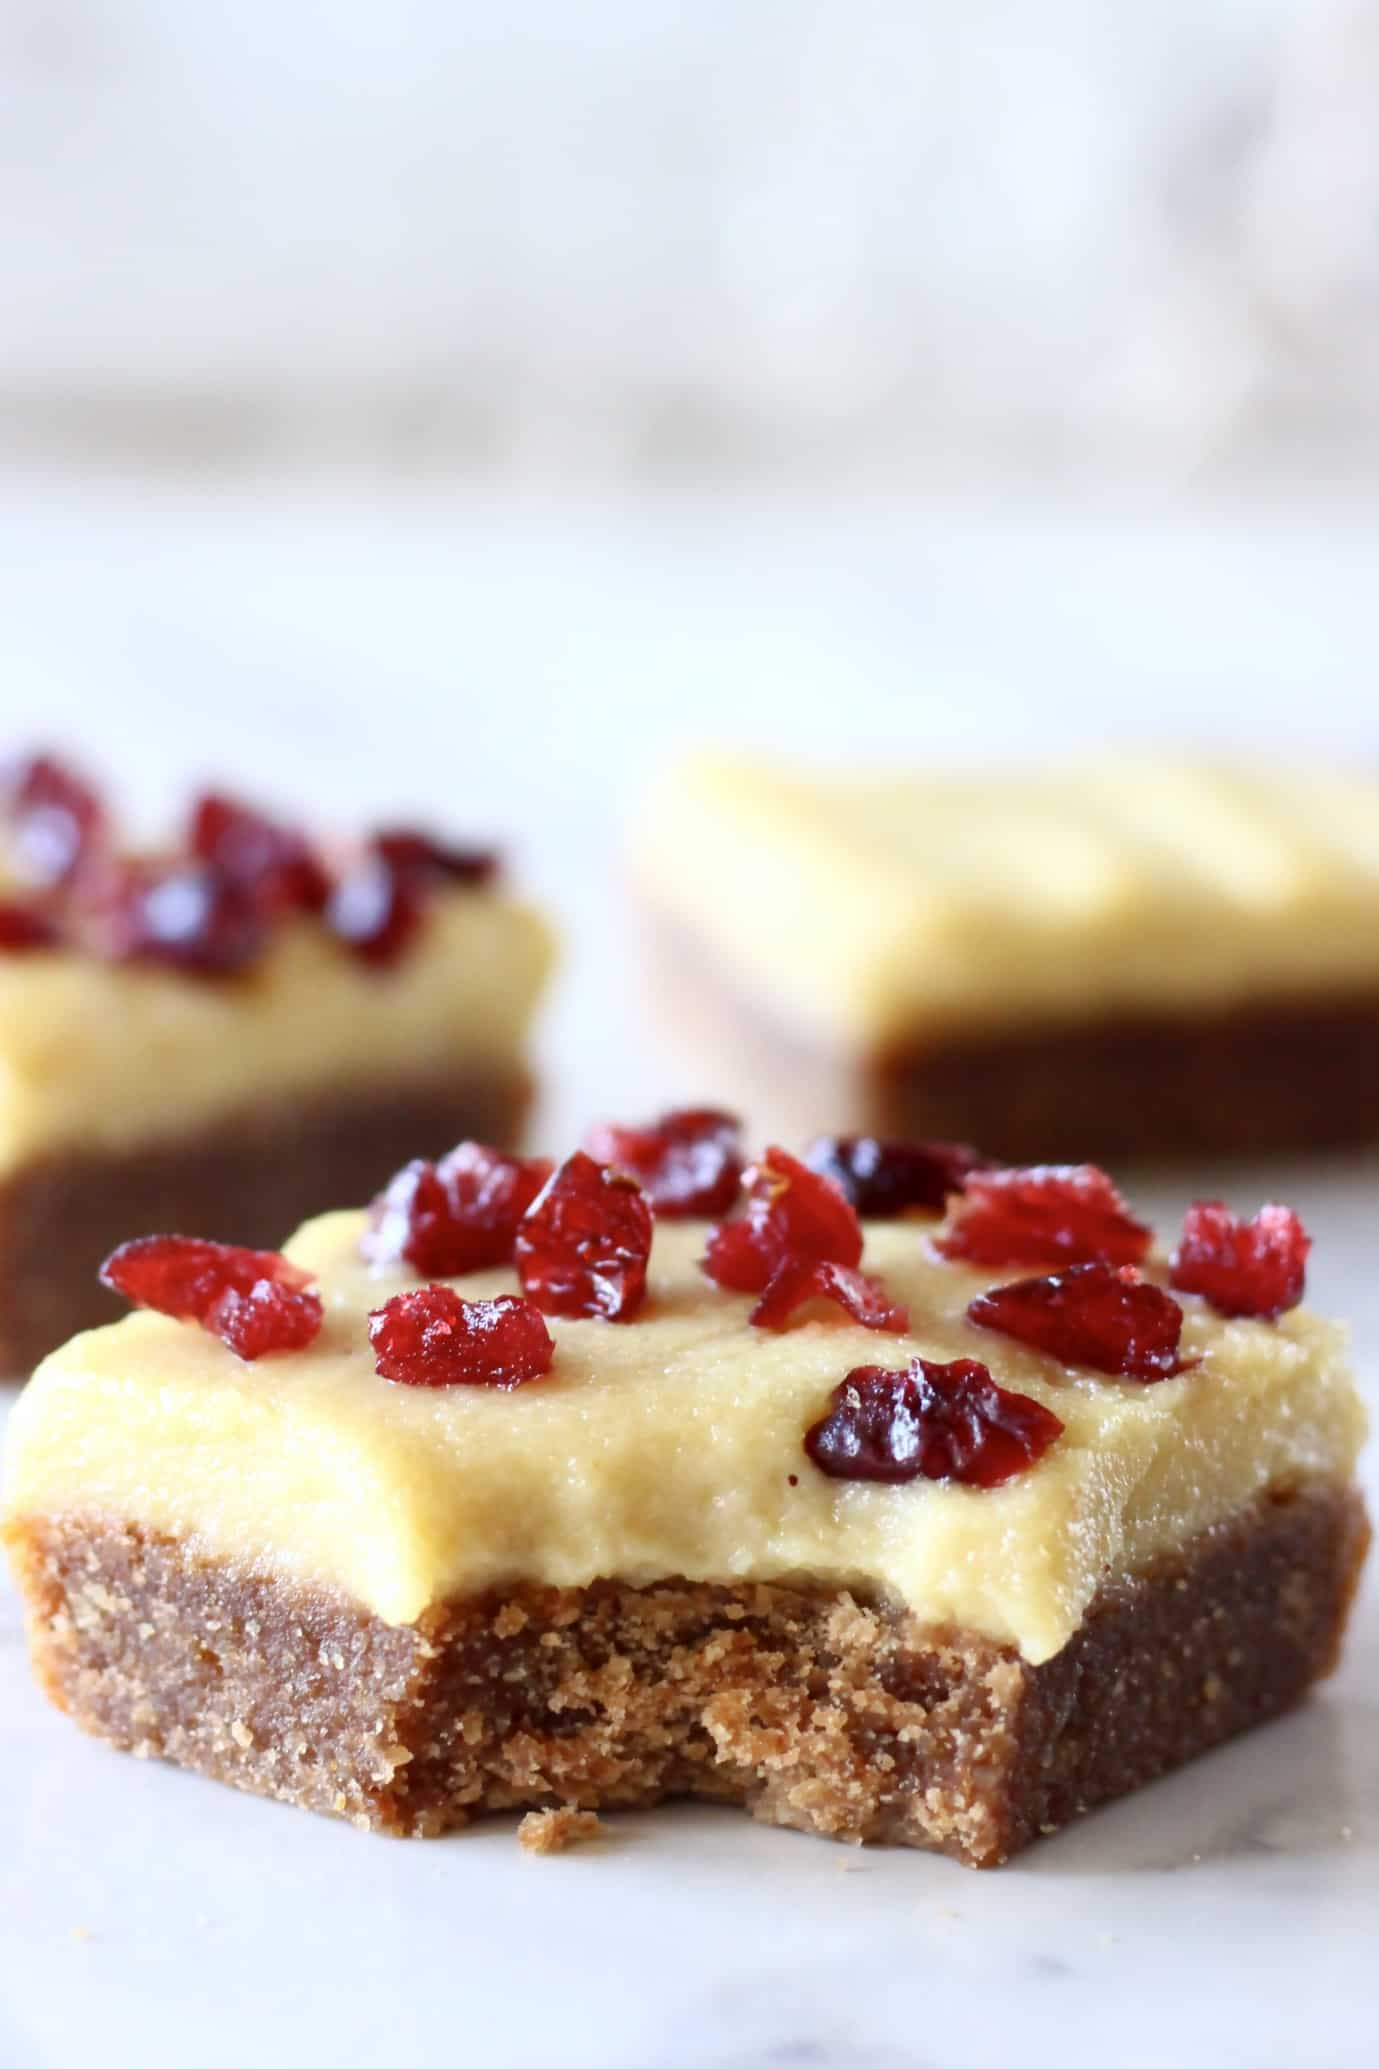 Three gluten-free vegan gingerbread cookie bars with frosting and dried cranberries with a bite taken out of one